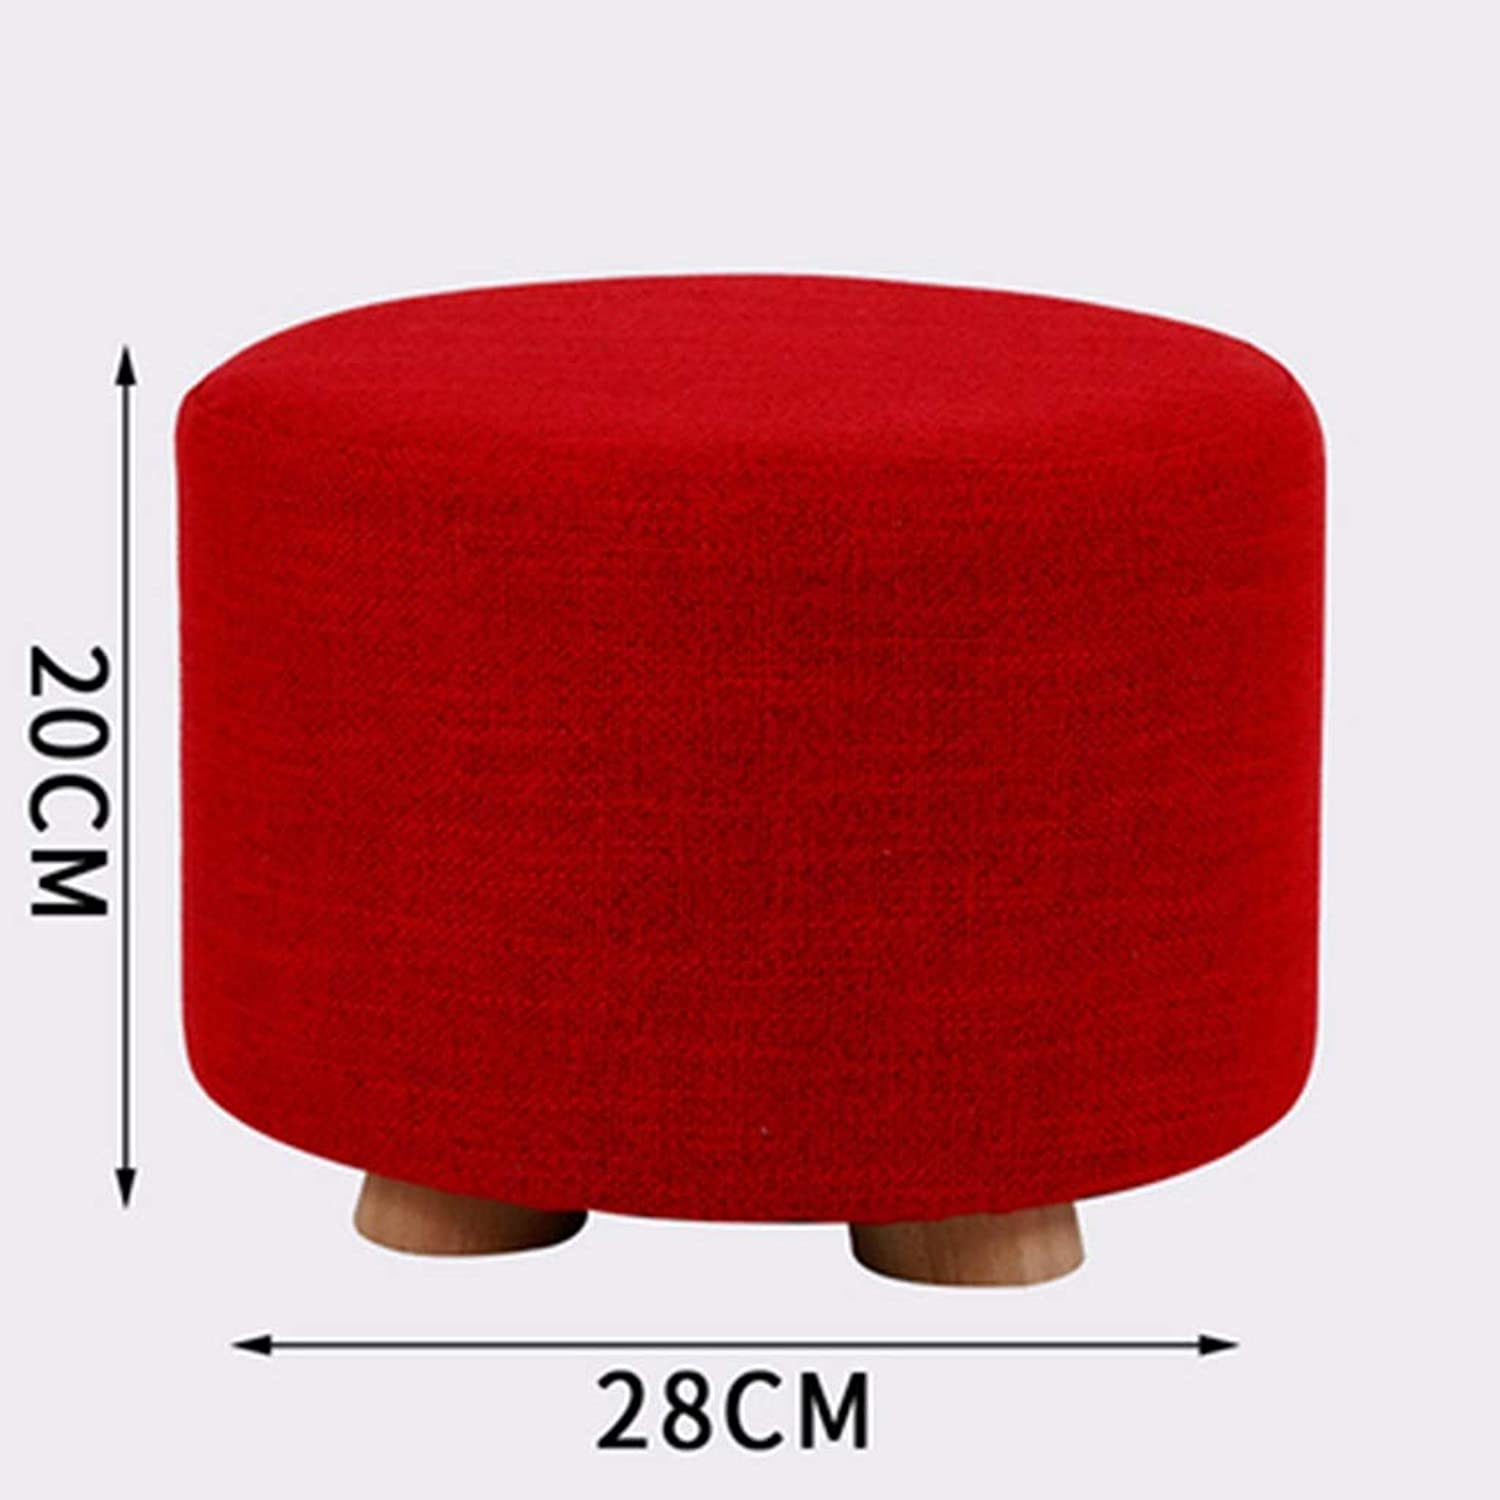 DQMSB Solid Wood Stool Home Change shoes Stool Stool Fashion Creative Living Room Small Bench Sofa Stool Bedroom Fabric Stool (color   D)